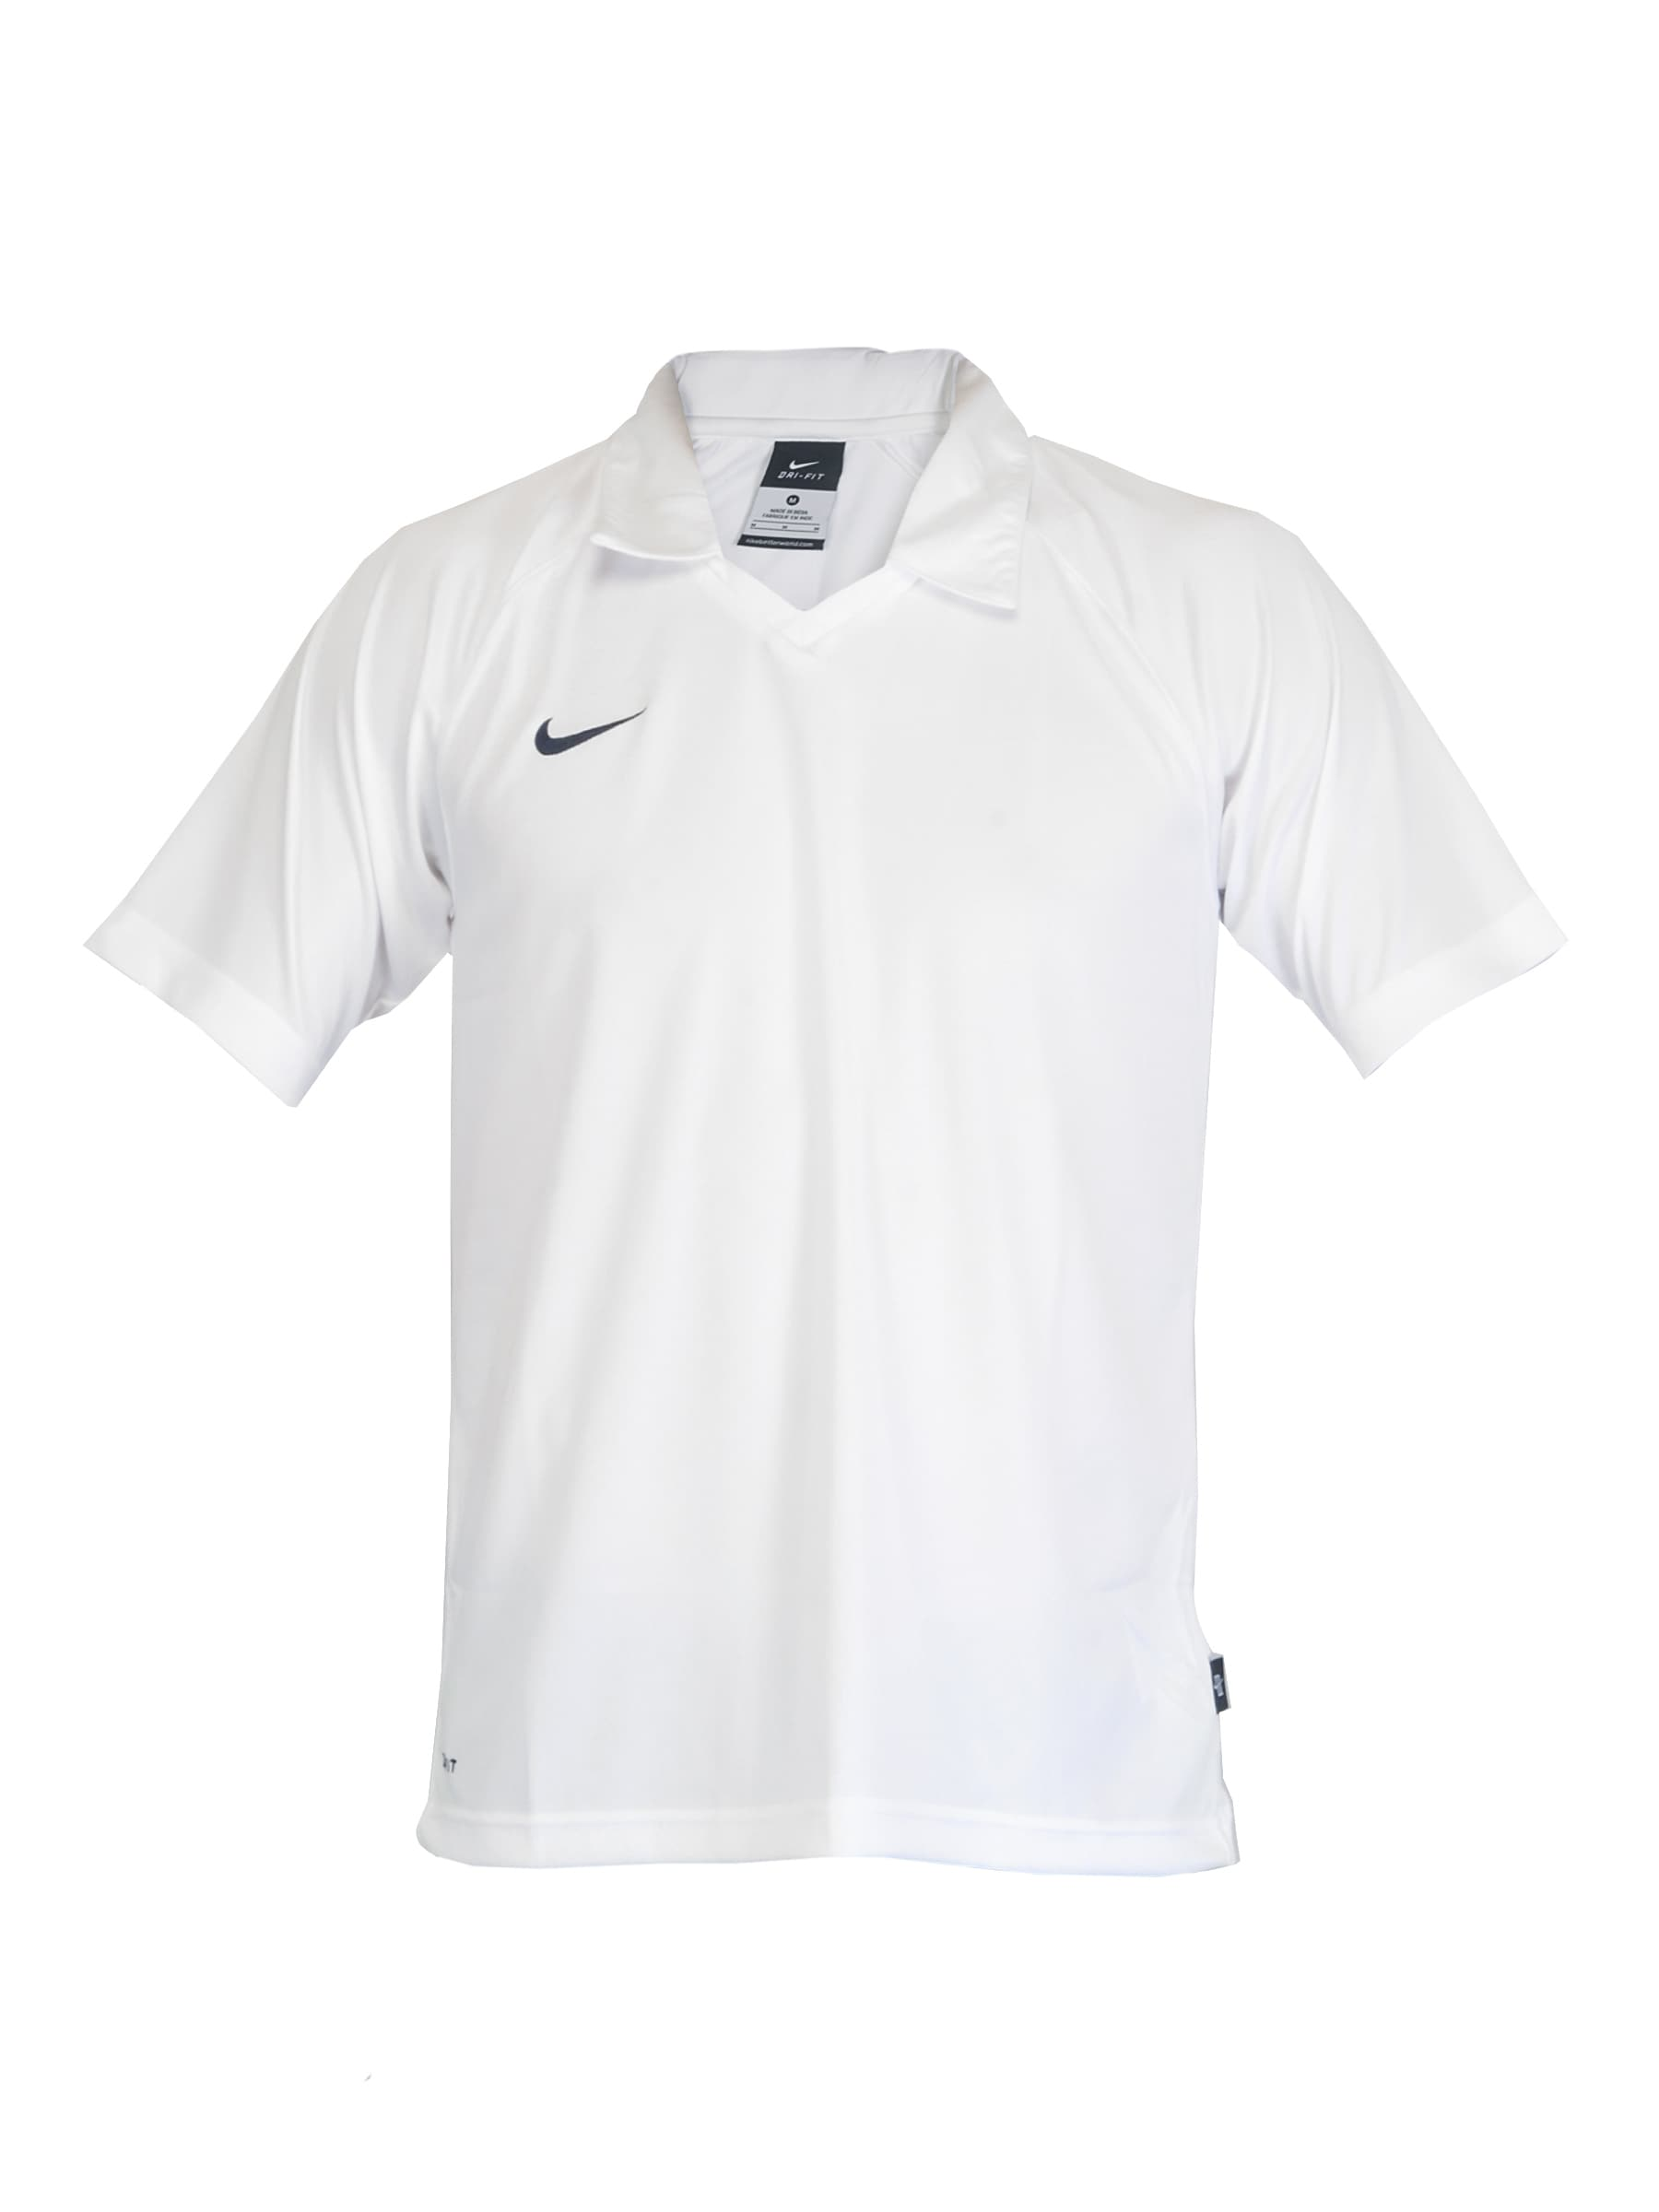 76131a67 Nike 503101-100 Men Cricket White Jersey - Best Price in India ...